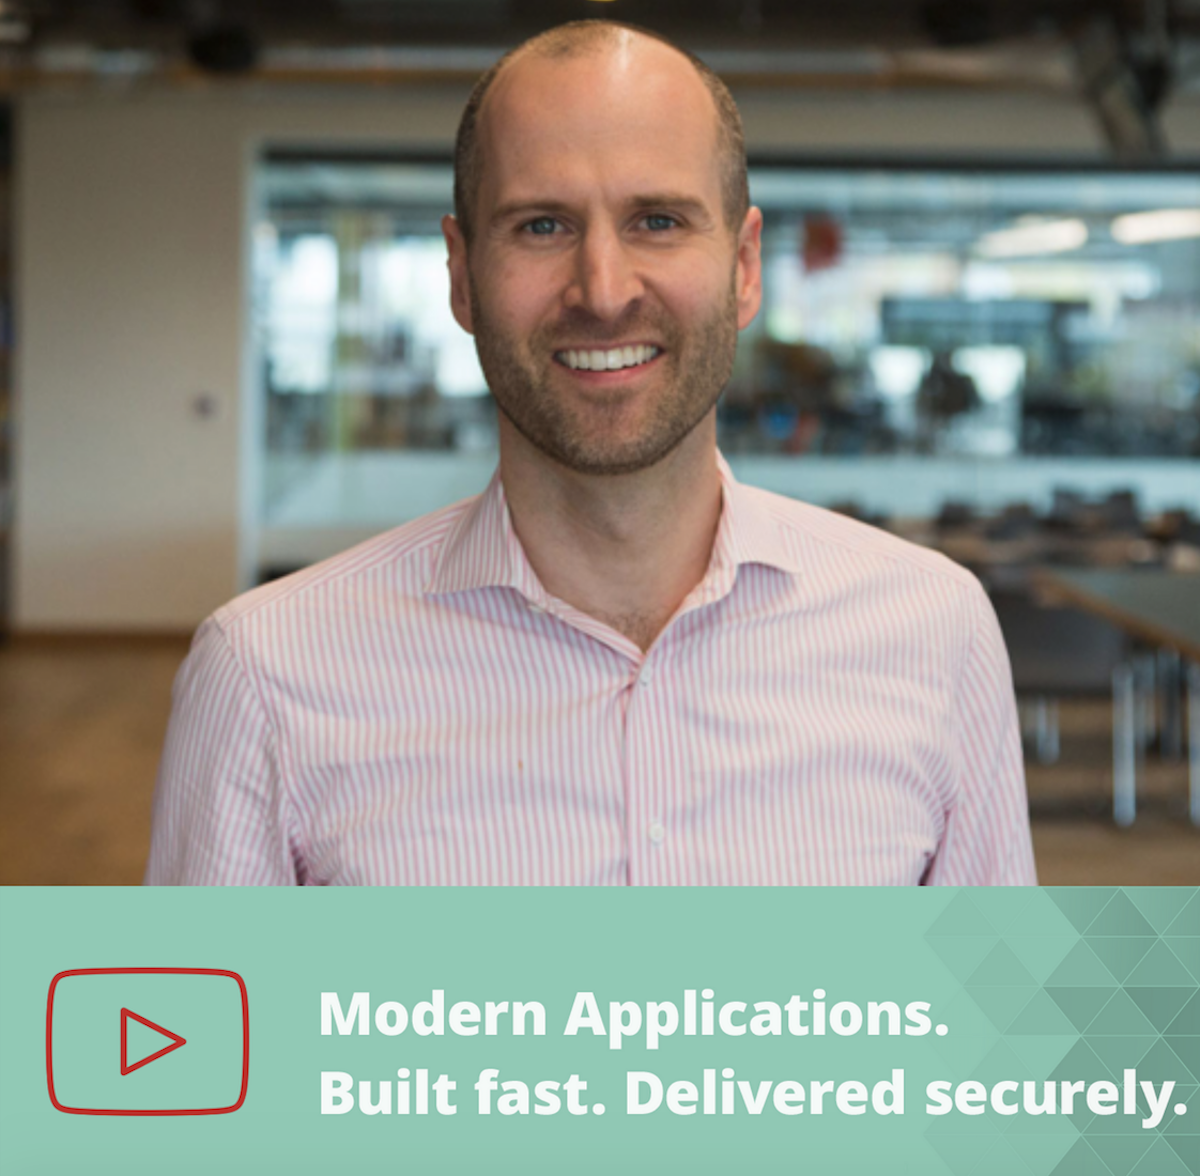 WATCH — Stackery's CEO Reviews Our New Secure Delivery Capabilities